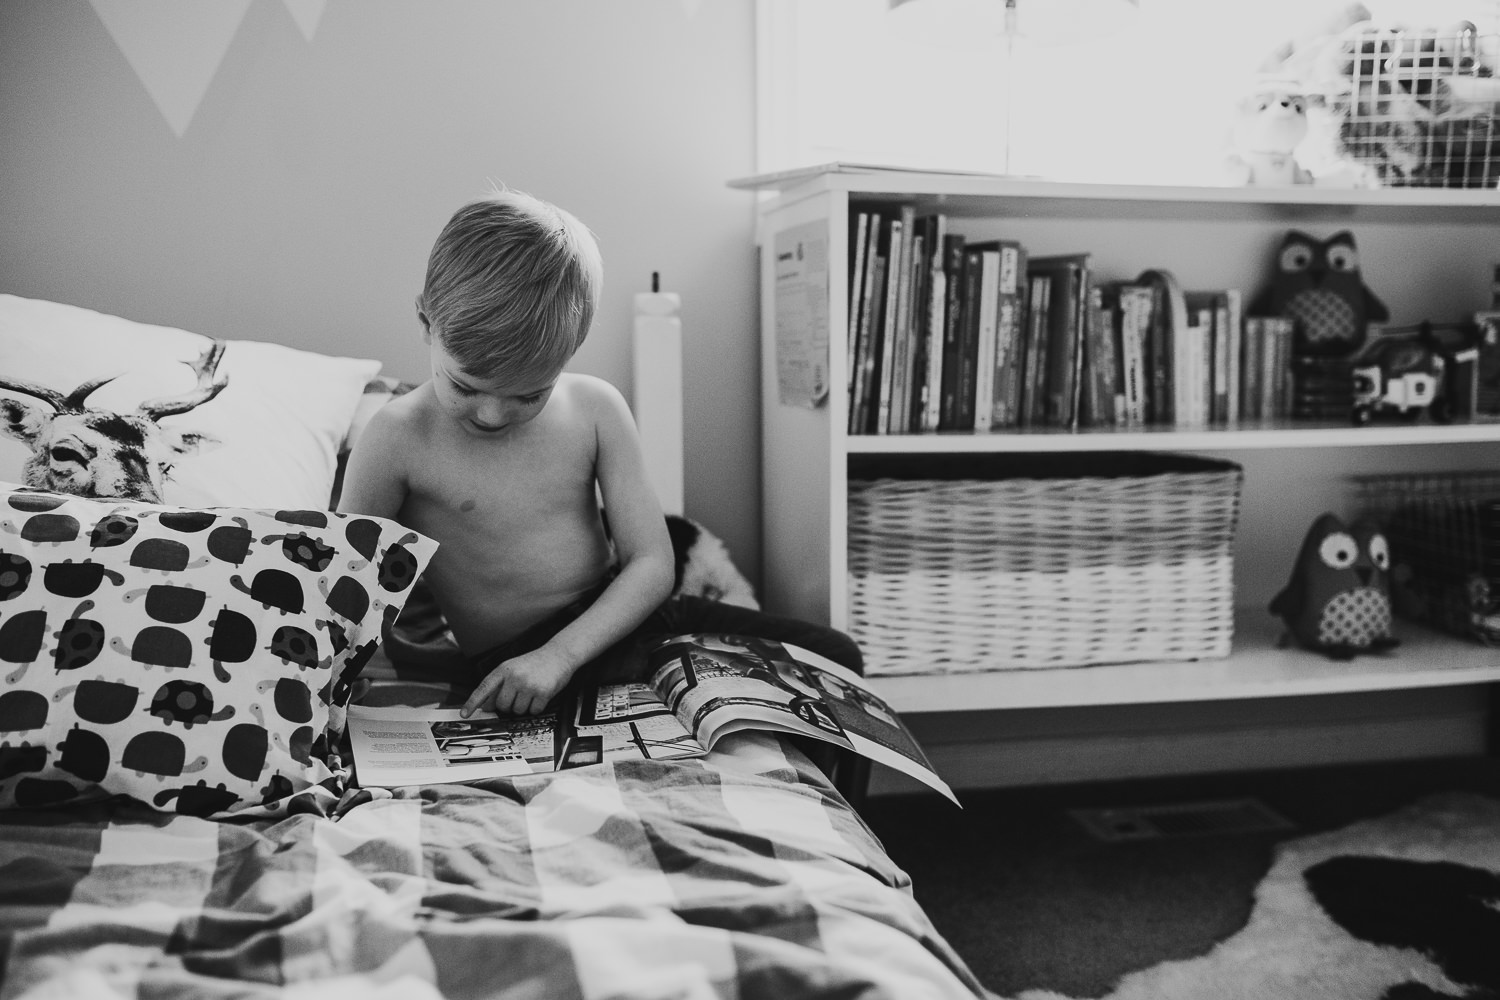 4 year old bot reads book while sitting on bed - Newmarket lifestyle photos